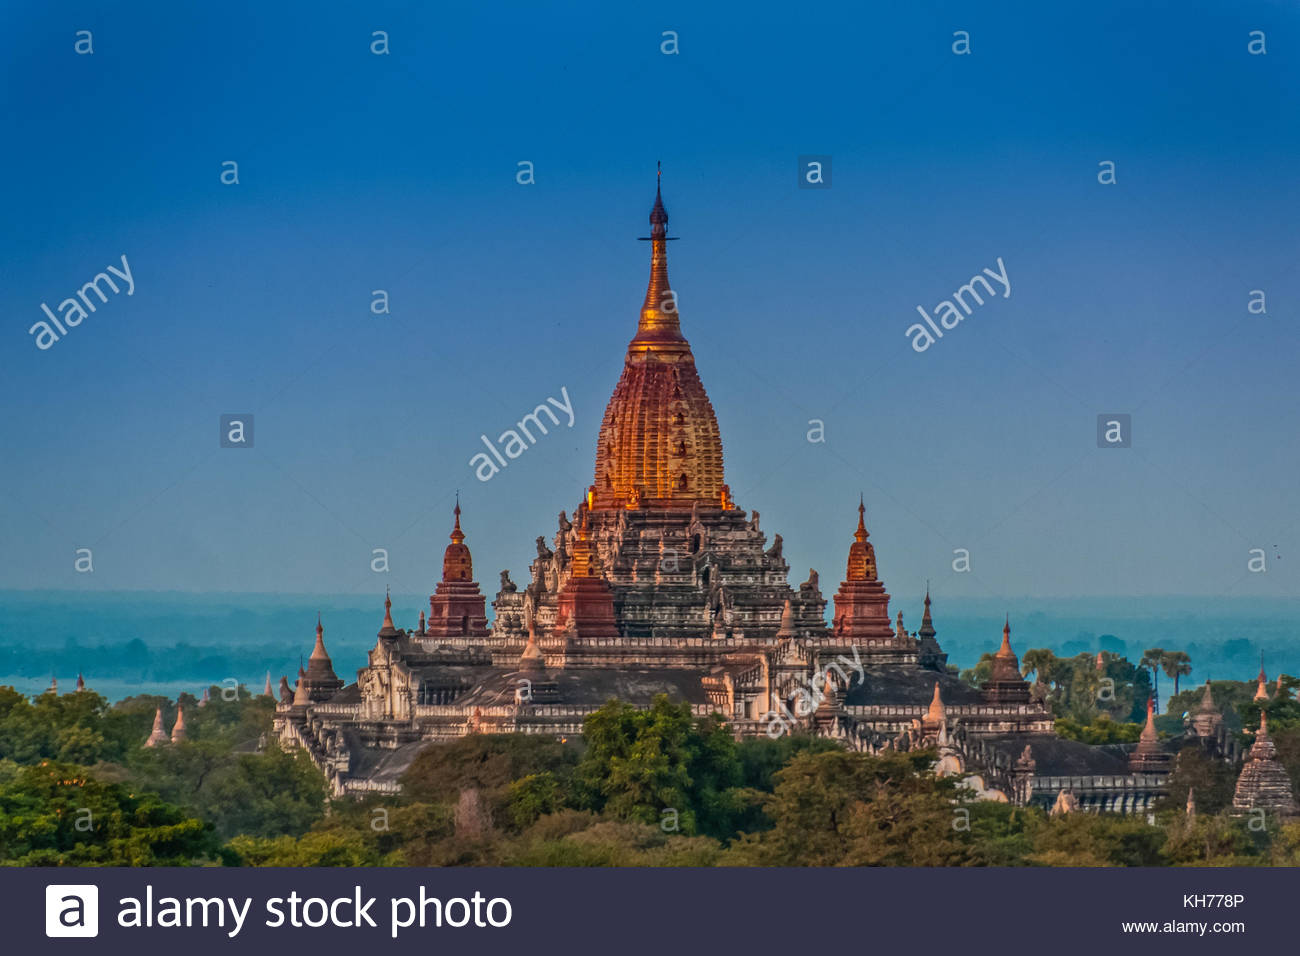 The Ananda Temple, Old Bagan, Myanmar - Stock Image